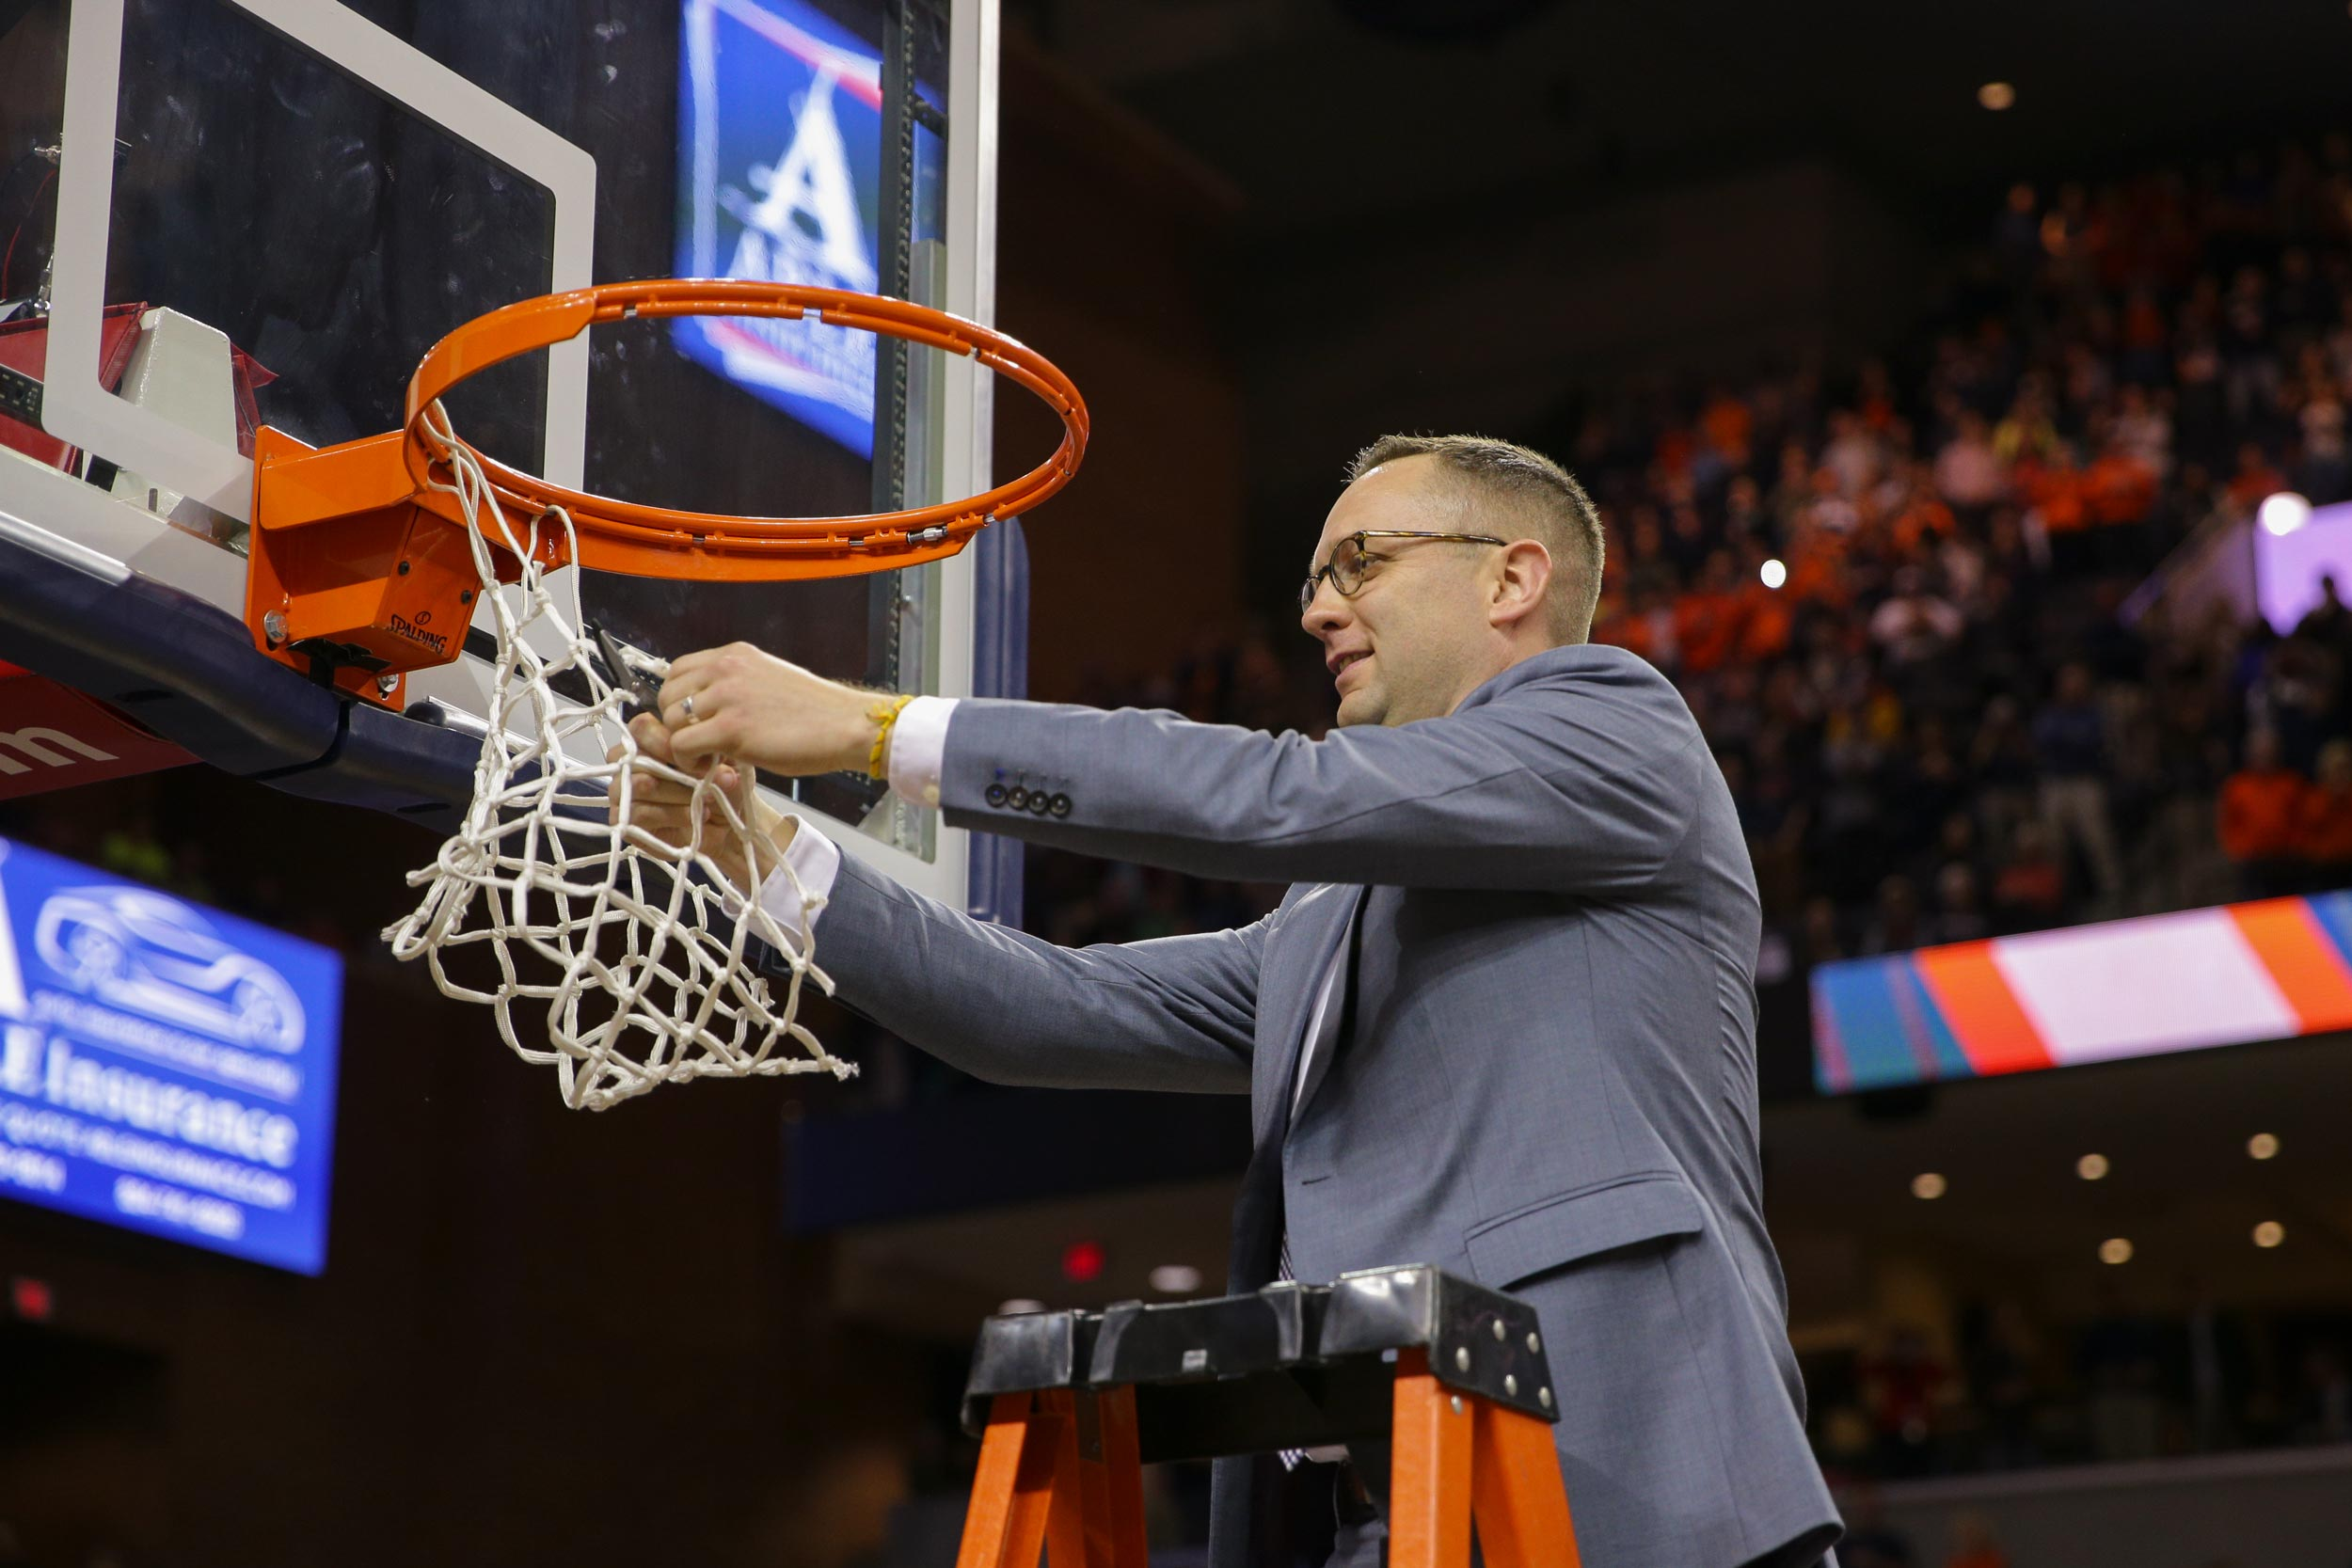 UVA head coach Tony Bennett makes a point to integrate Grams into all areas of the team experience – including cutting down the nets after the 'Hoos captured the ACC regular-season championship.